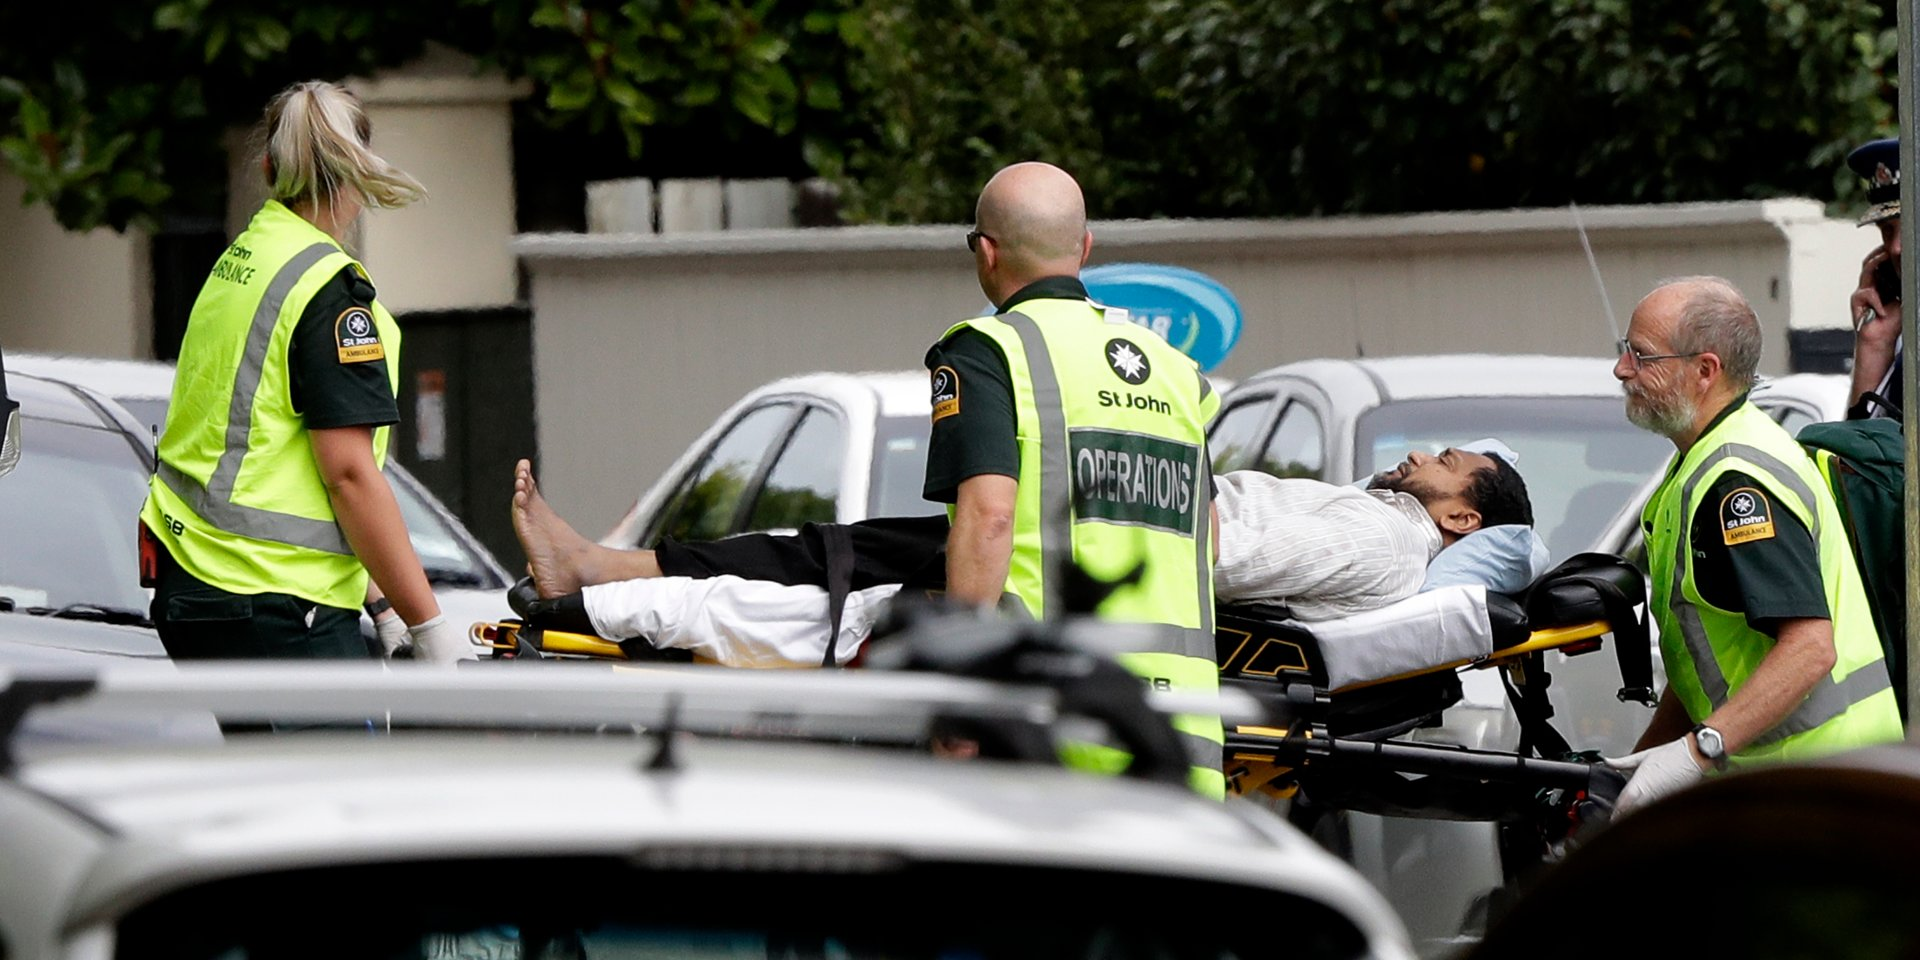 Shooting In Christchurch Picture: PewDiePie Provides Statement Following New Zealand Shooting